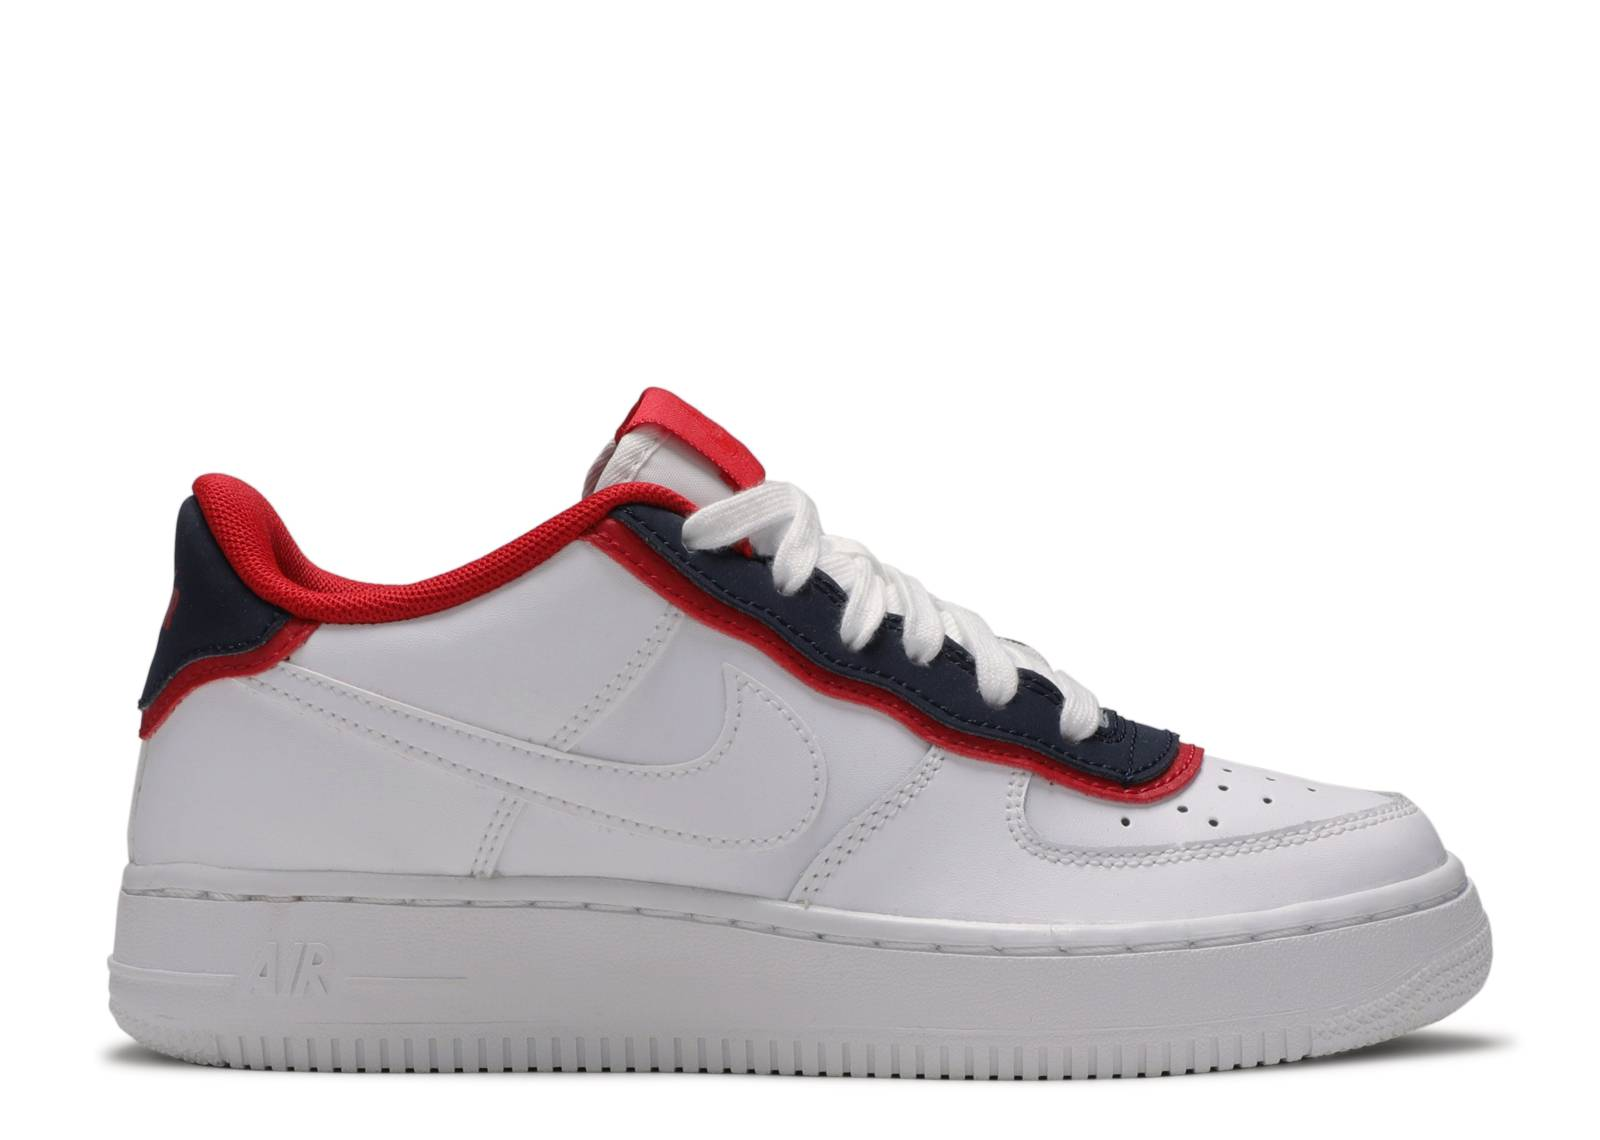 Air Force 1 Low LV8 DBL GS